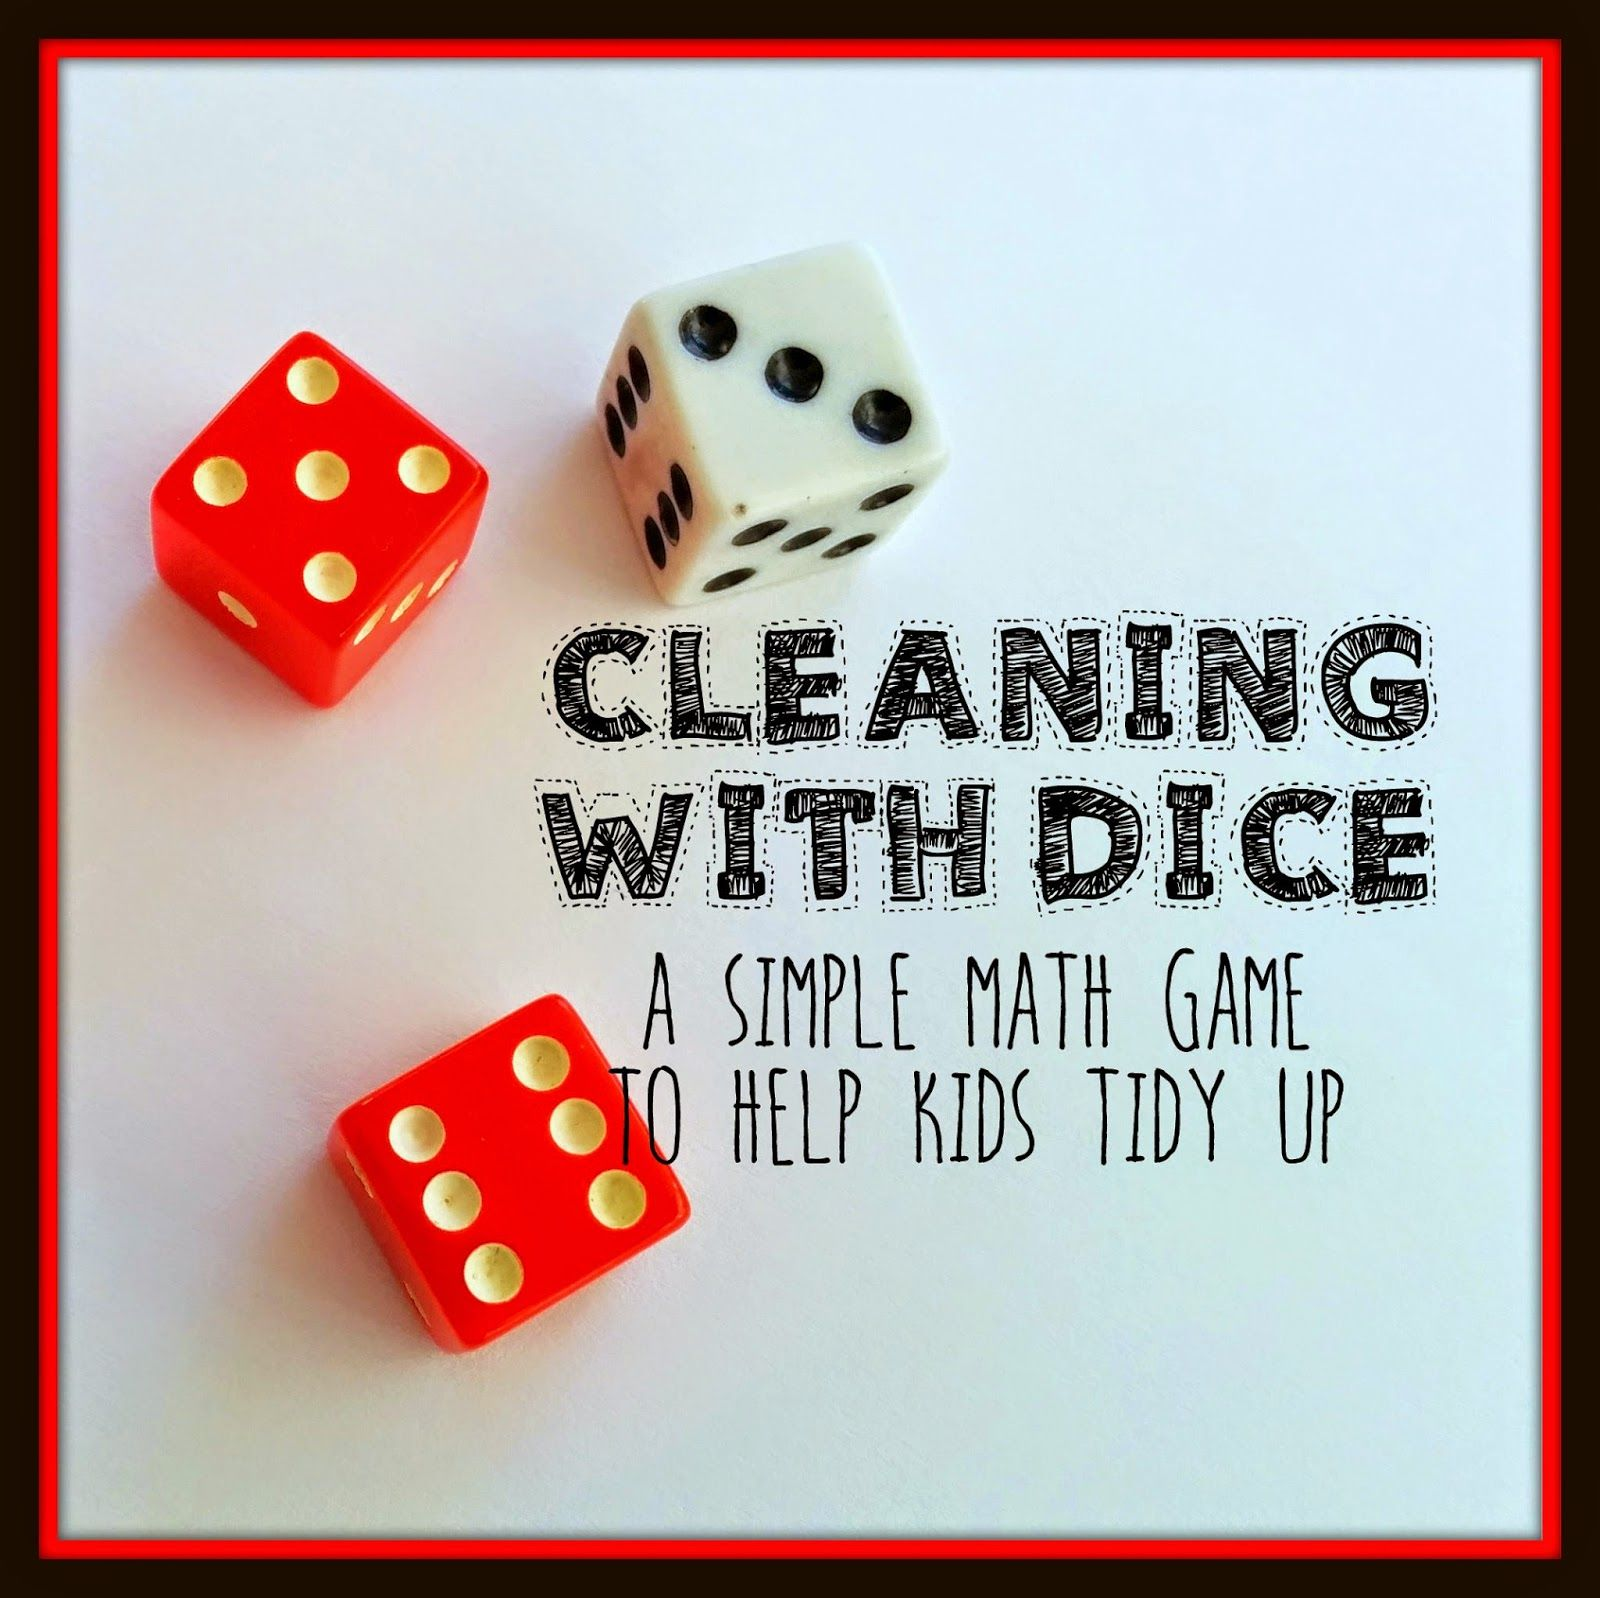 cleaning with dice: a simple math game to help kids tidy up